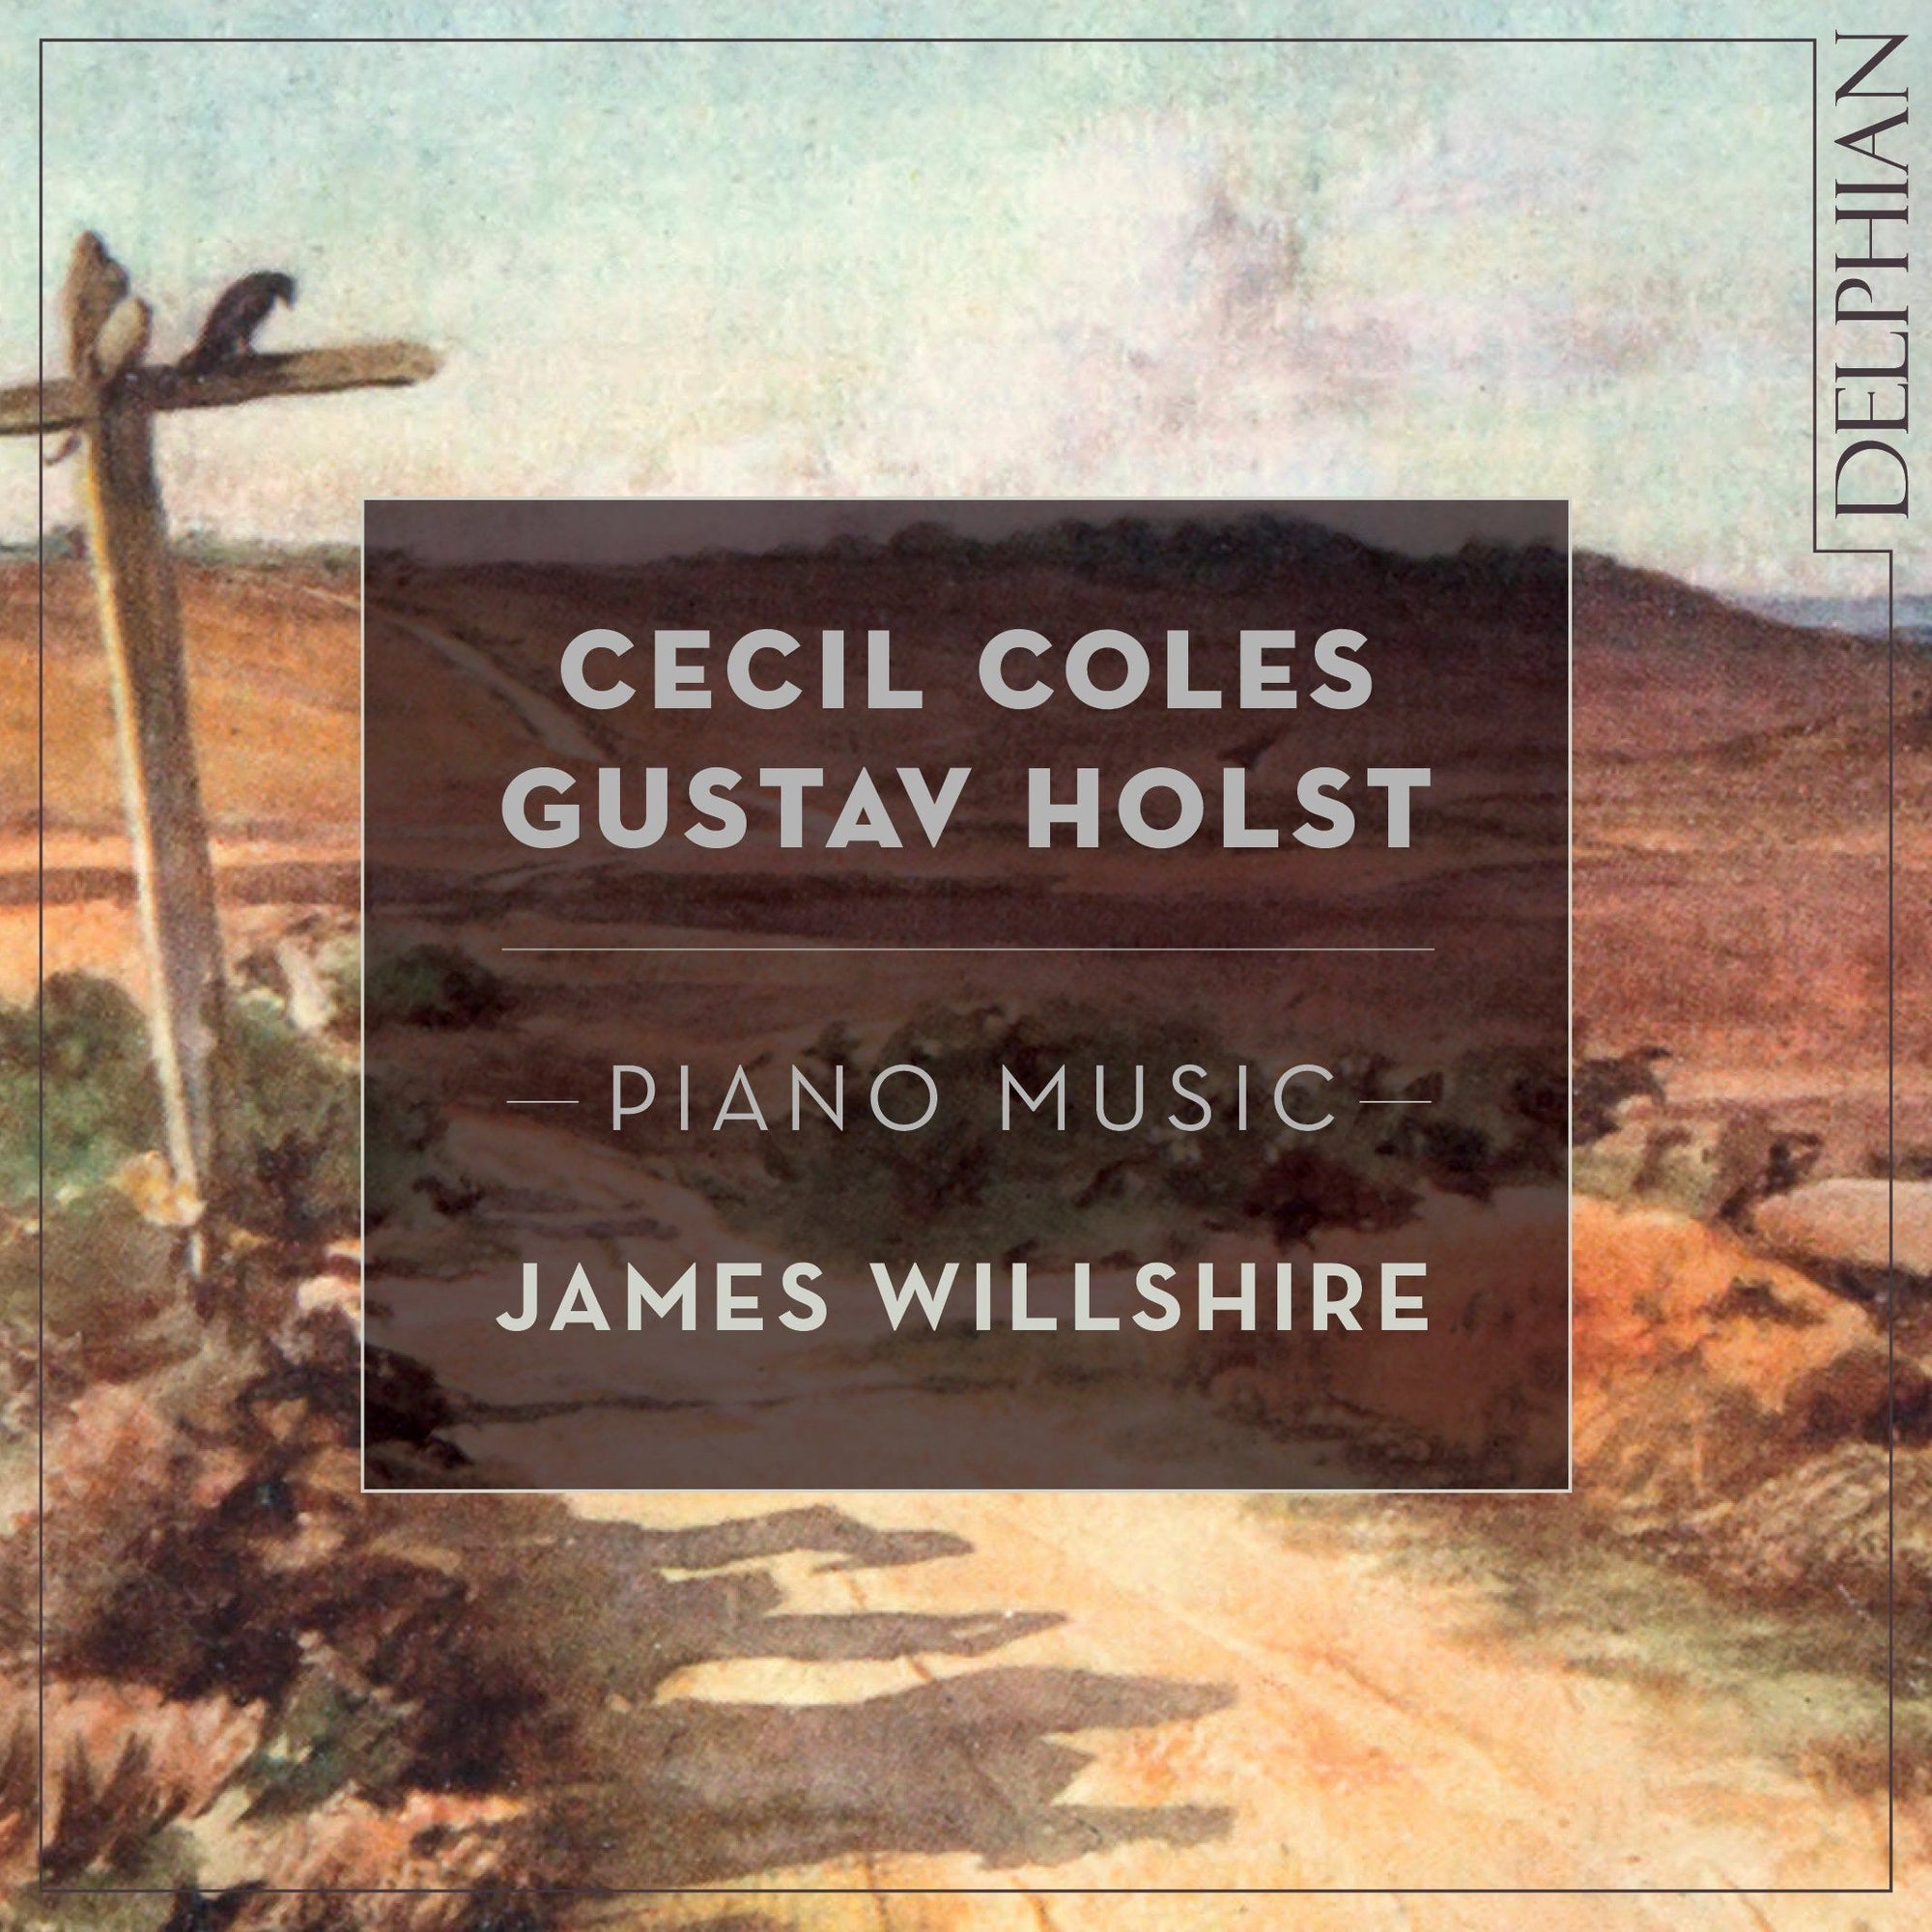 Cecil Coles, Gustav Holst: Piano Music